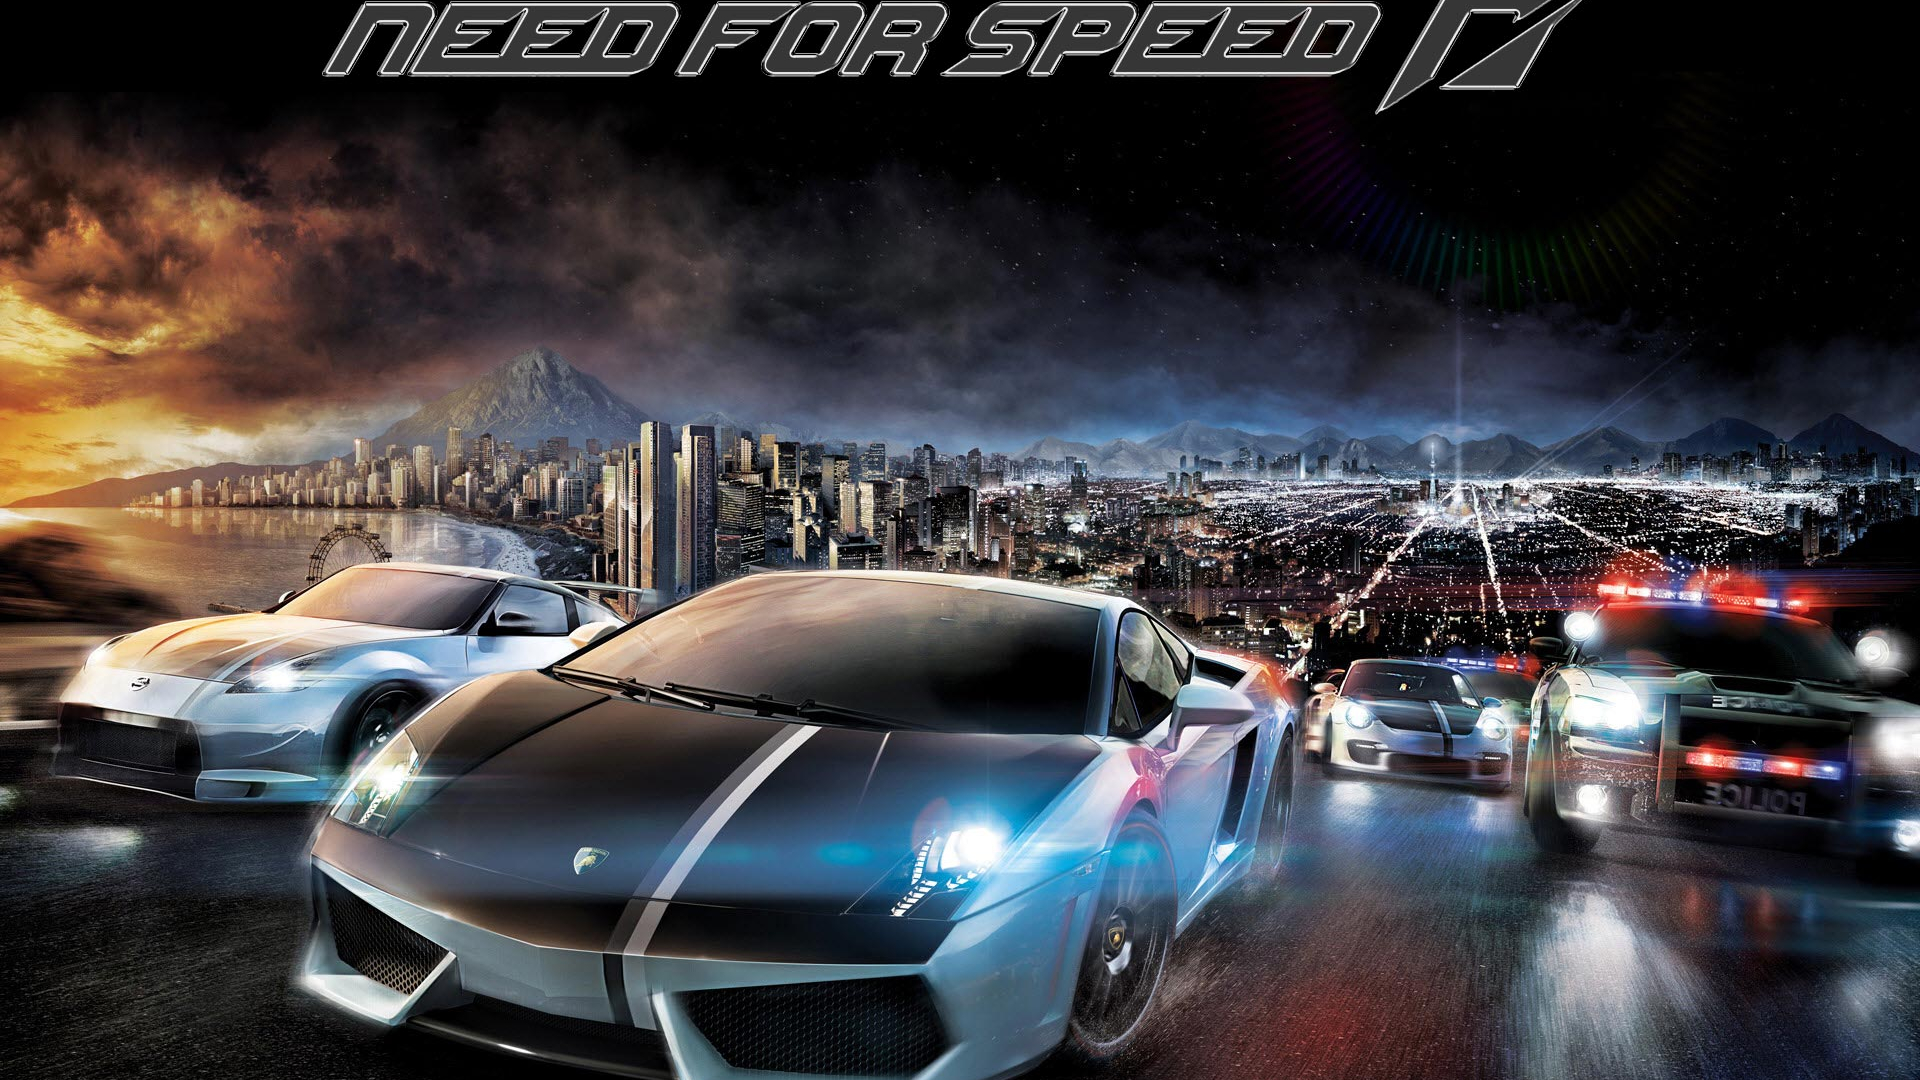 Free Download Need For Speed 2014 Wallpaper High Definition High Quality 1920x1200 For Your Desktop Mobile Tablet Explore 49 Need For Speed Movie Wallpaper Mustang Need For Speed Wallpaper